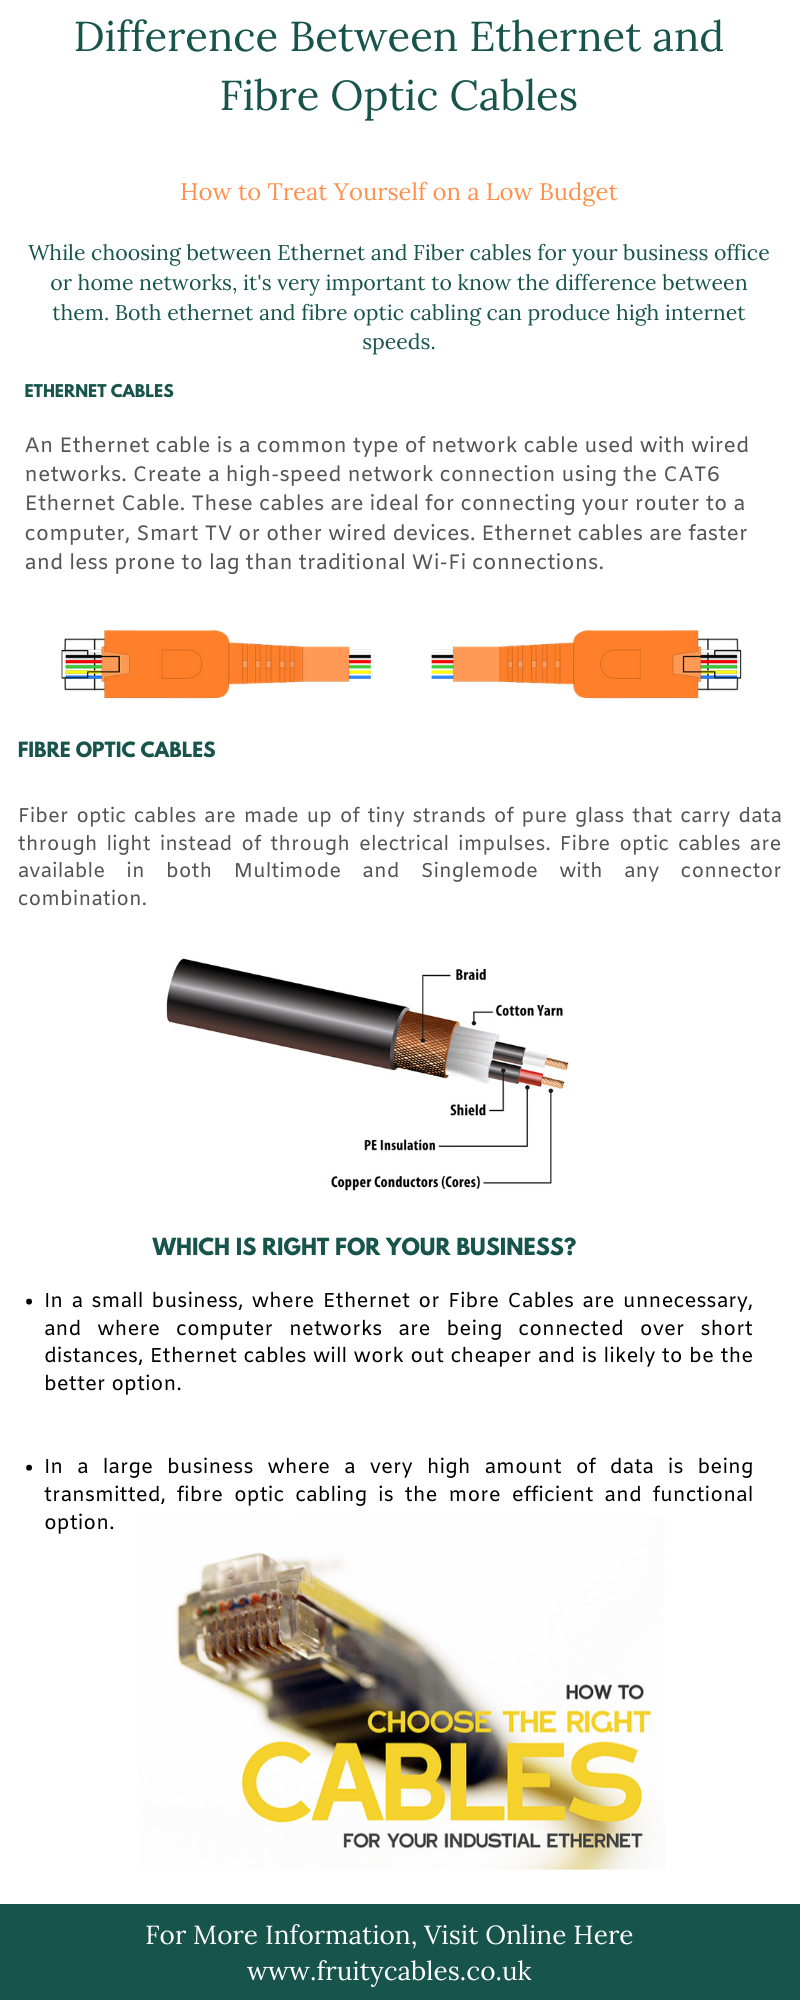 While choosing between and Fiber cables for your